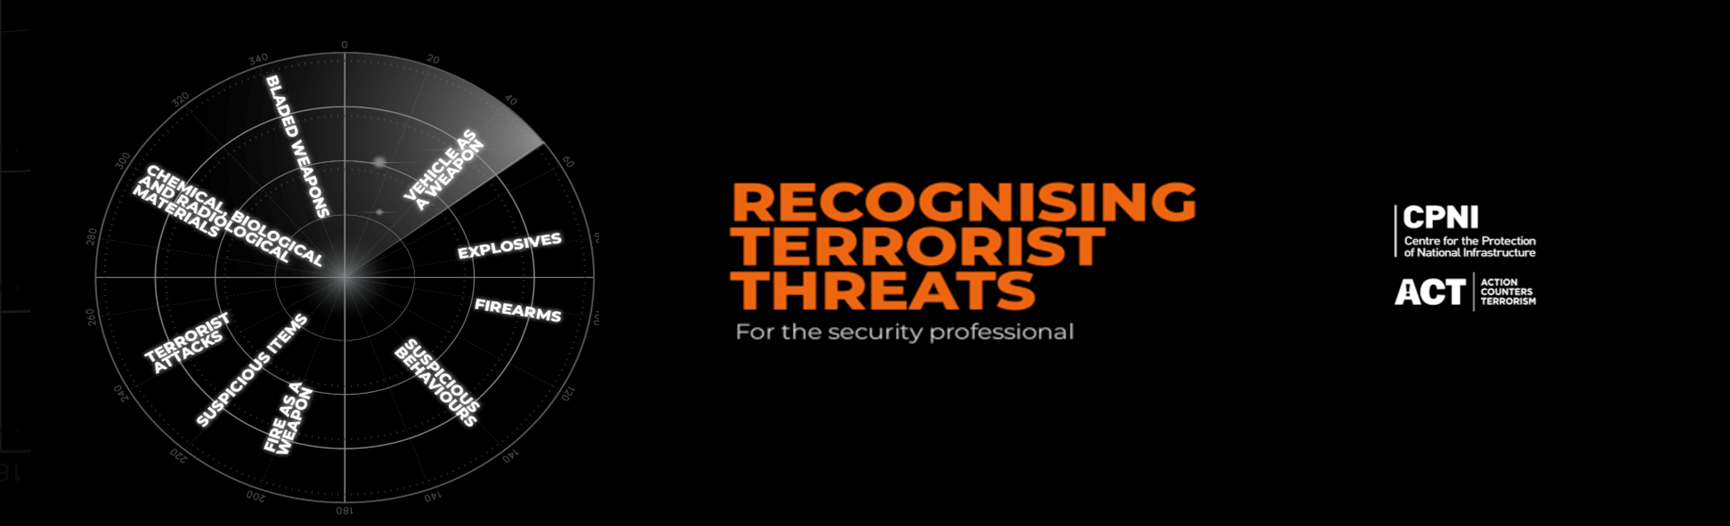 Front cover Recognising terrorist threats guidance